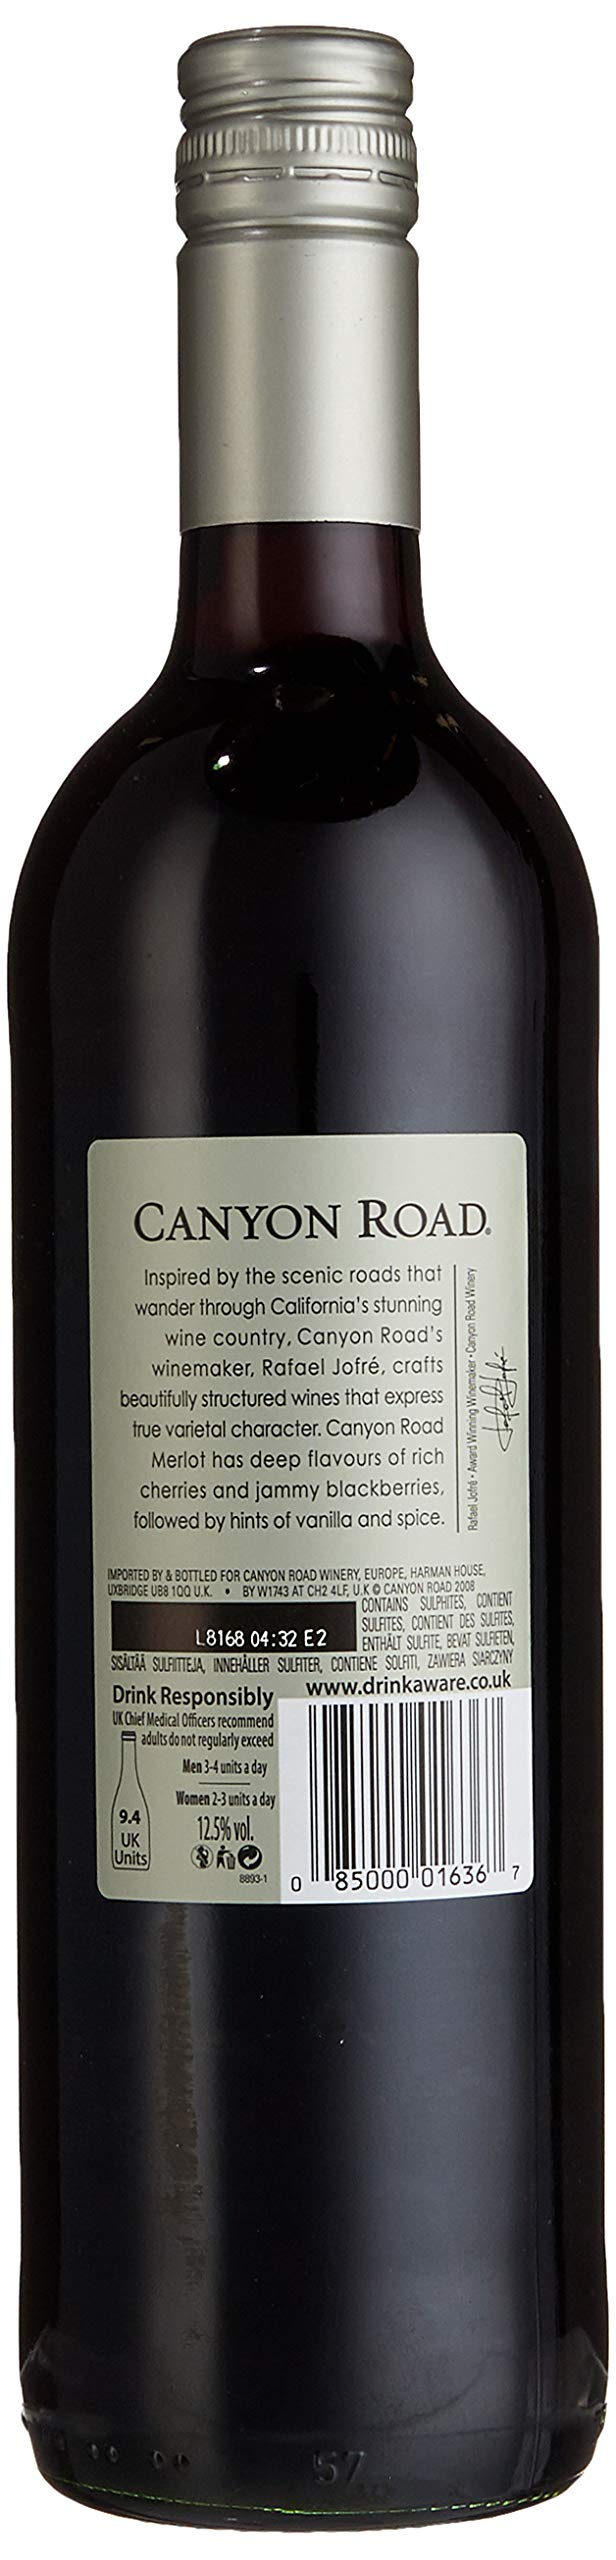 Canyon-Road-Merlot-201220132014-halbtrocken-3-x-075-l